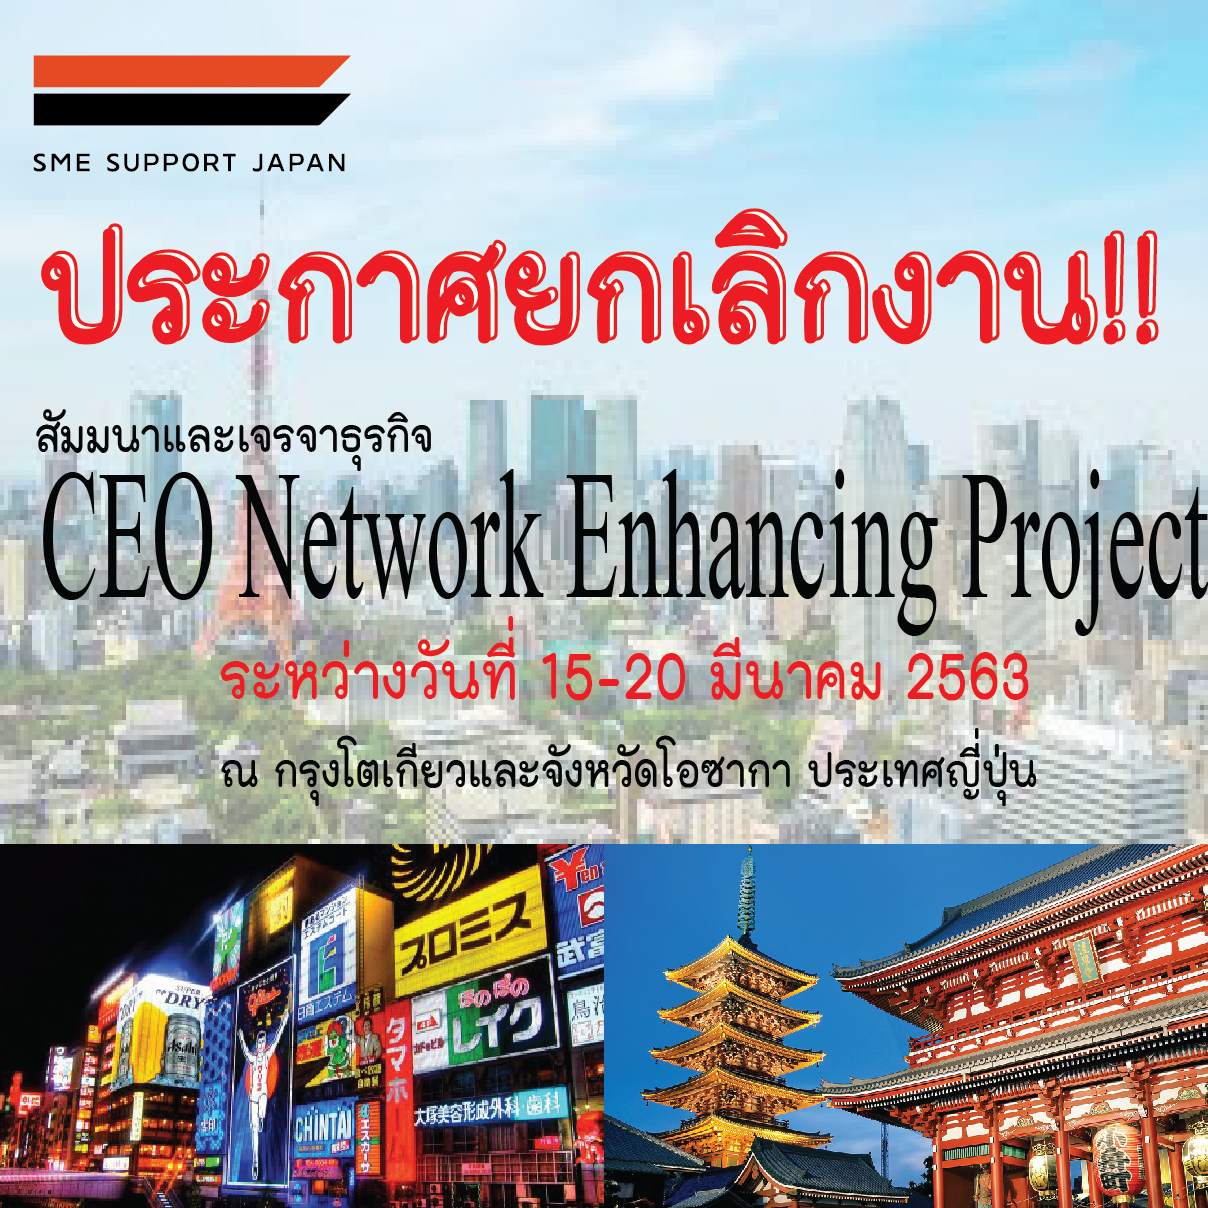 Medical CEO Business Matching in Tokyo & Osaka in March has been decided to cancel by SMRJ